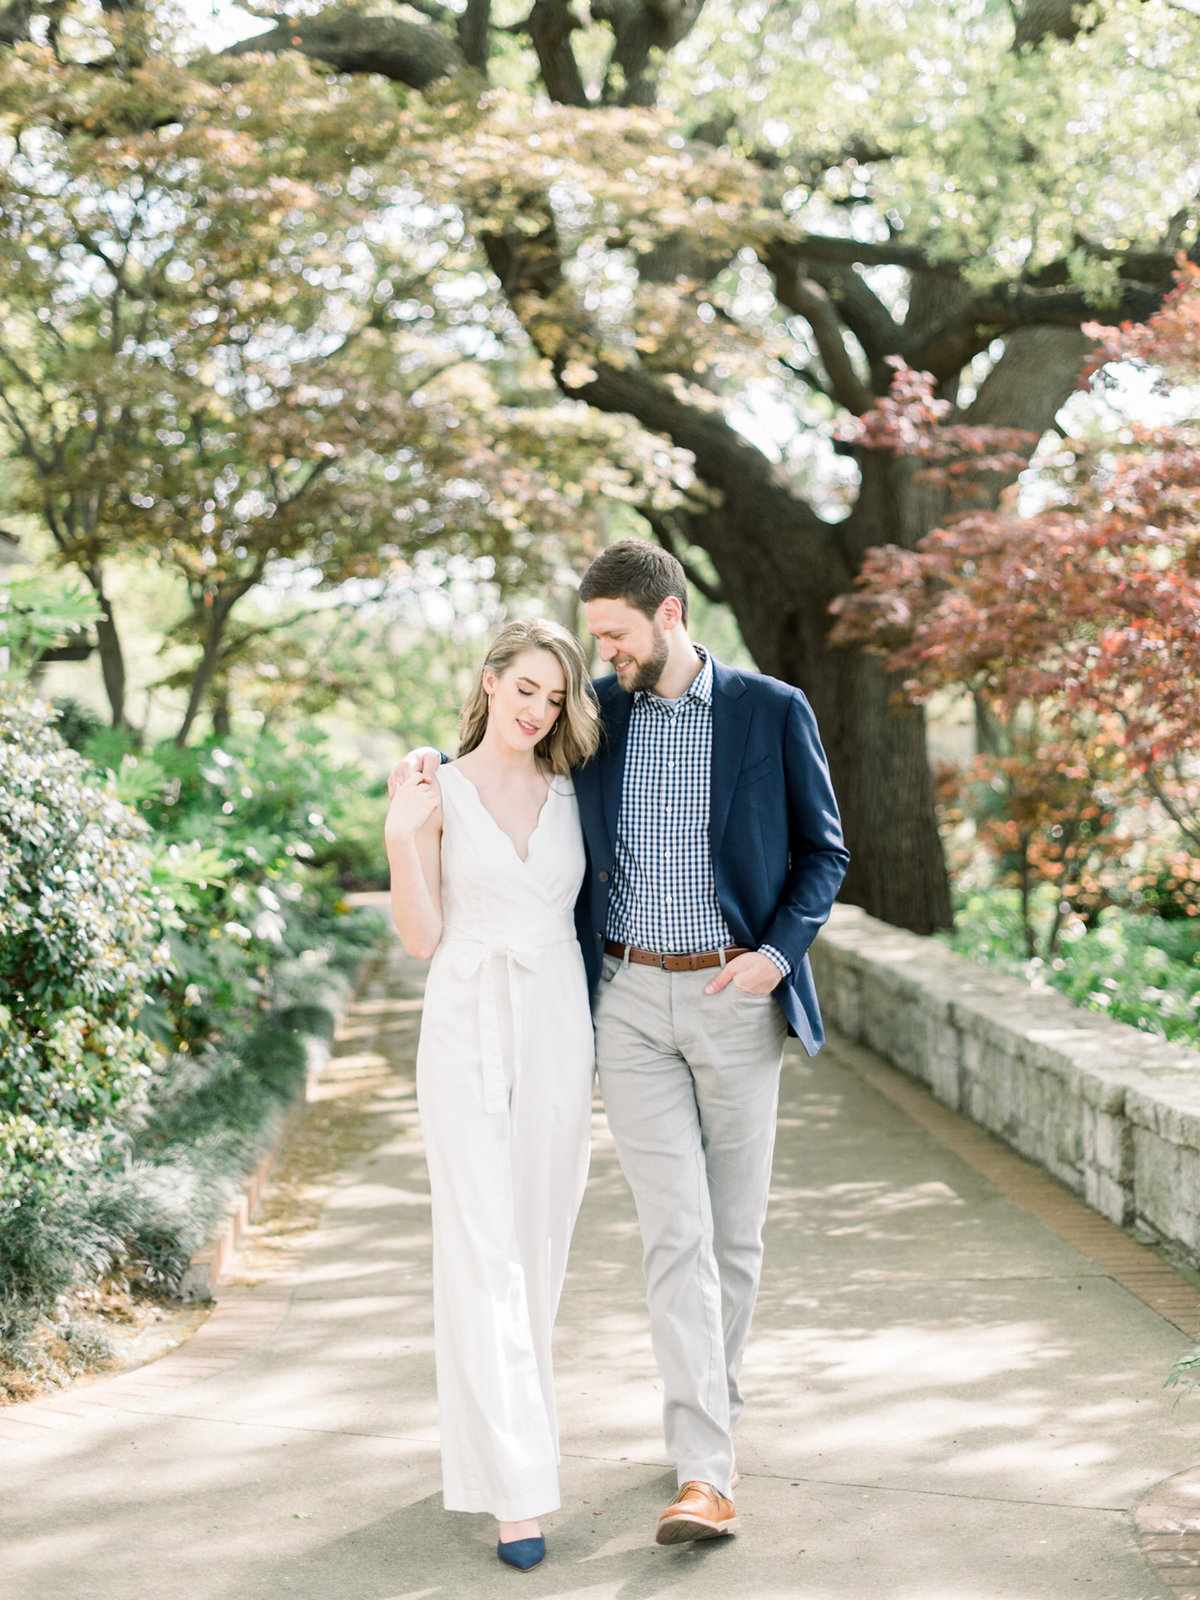 Courtney Hanson Photography - Dallas Spring Engagement Photos at Dallas Arboretum-2741